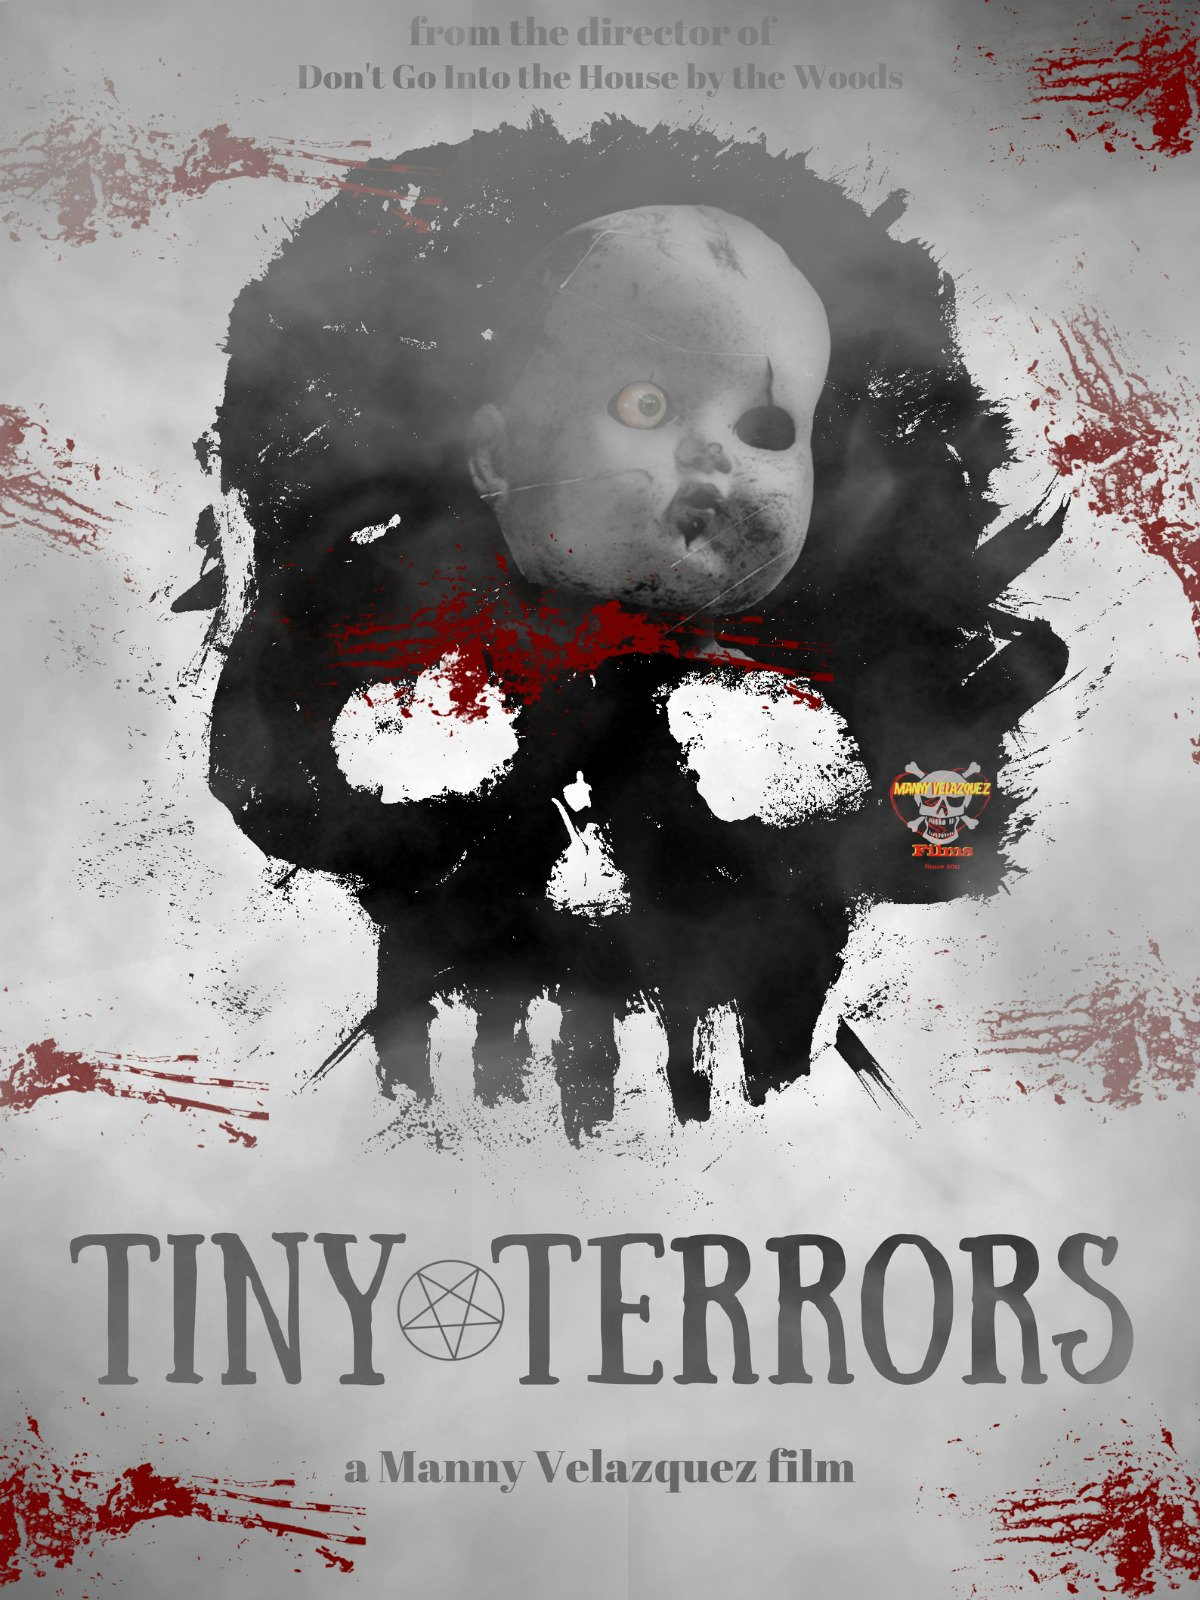 Tiny Terrors (Unrated Version)